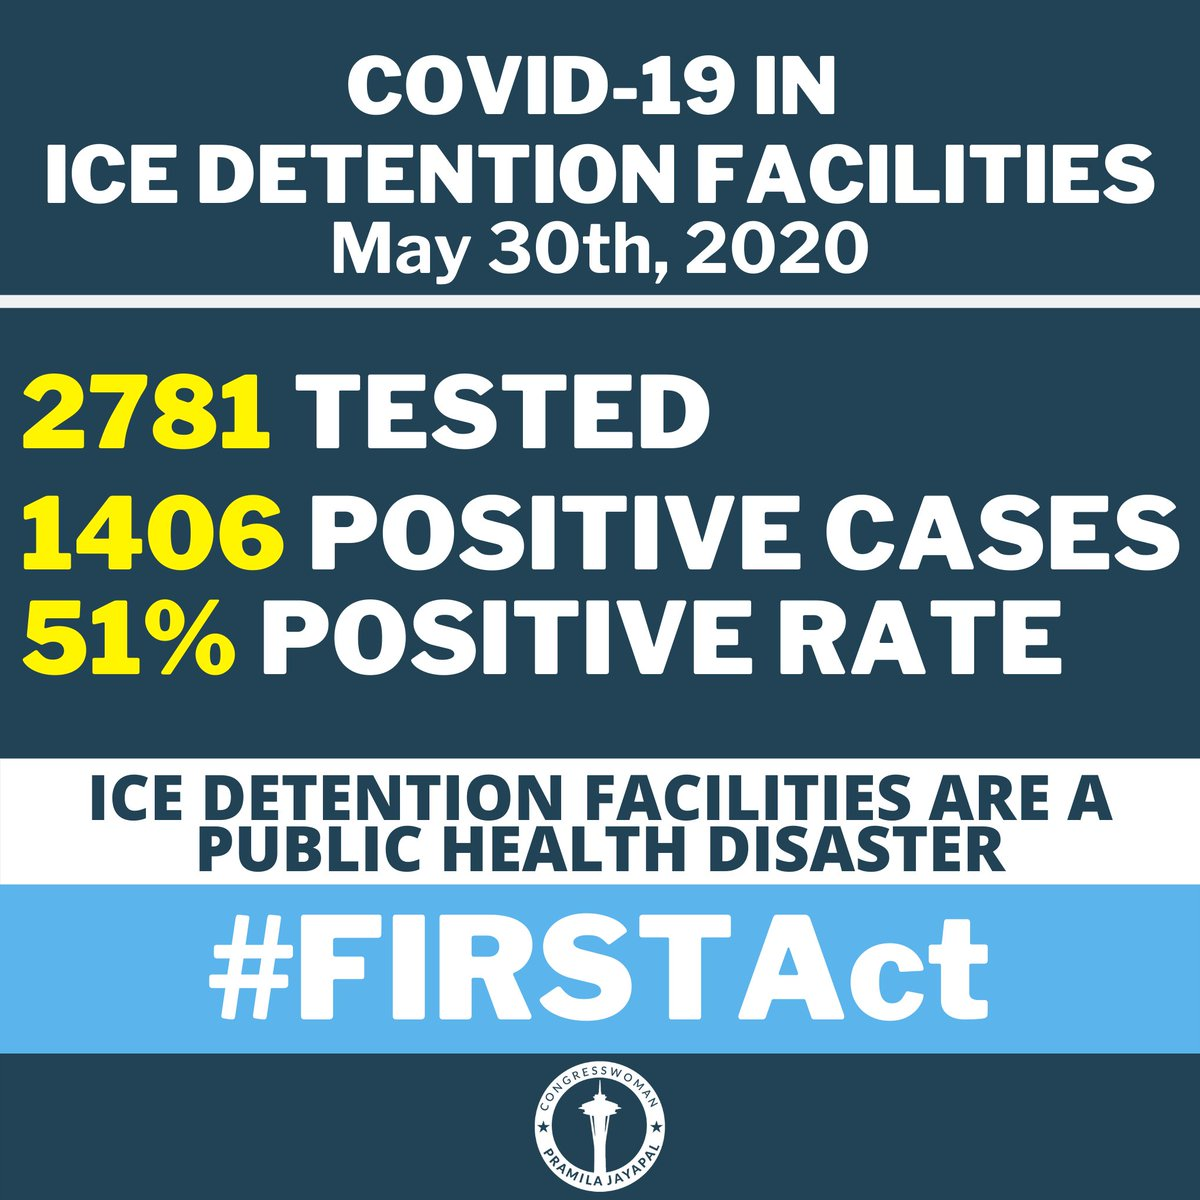 The positive testing rate for COVID-19 in ICE detention facilities is 51% with more than 1400 positive cases. We must pass my FIRST Act to finally give immigrants the same access to public health practices as the rest of us.